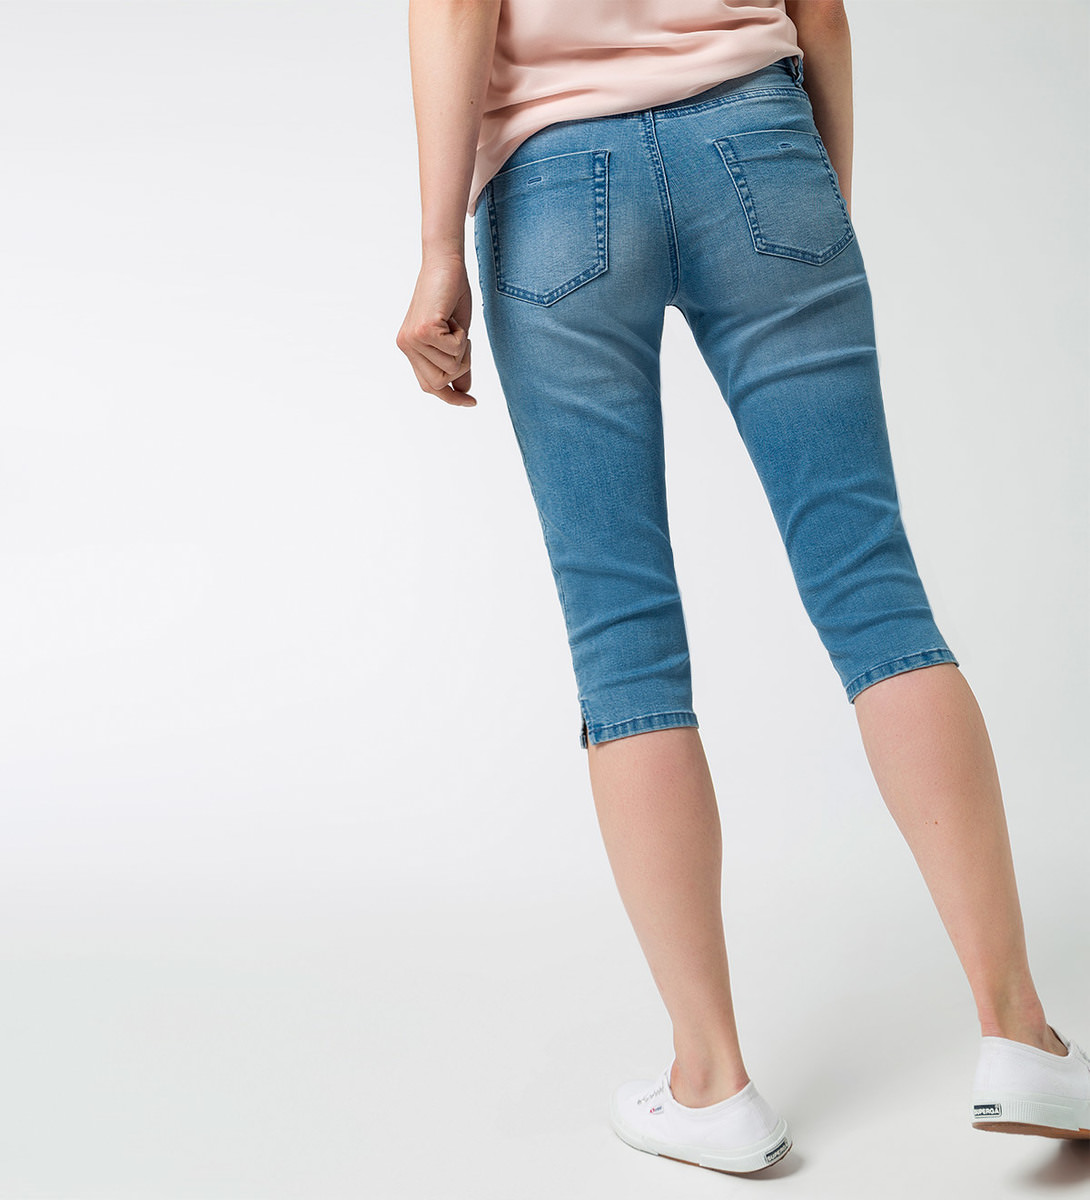 Jeans in 3/4-Länge in light blue washed